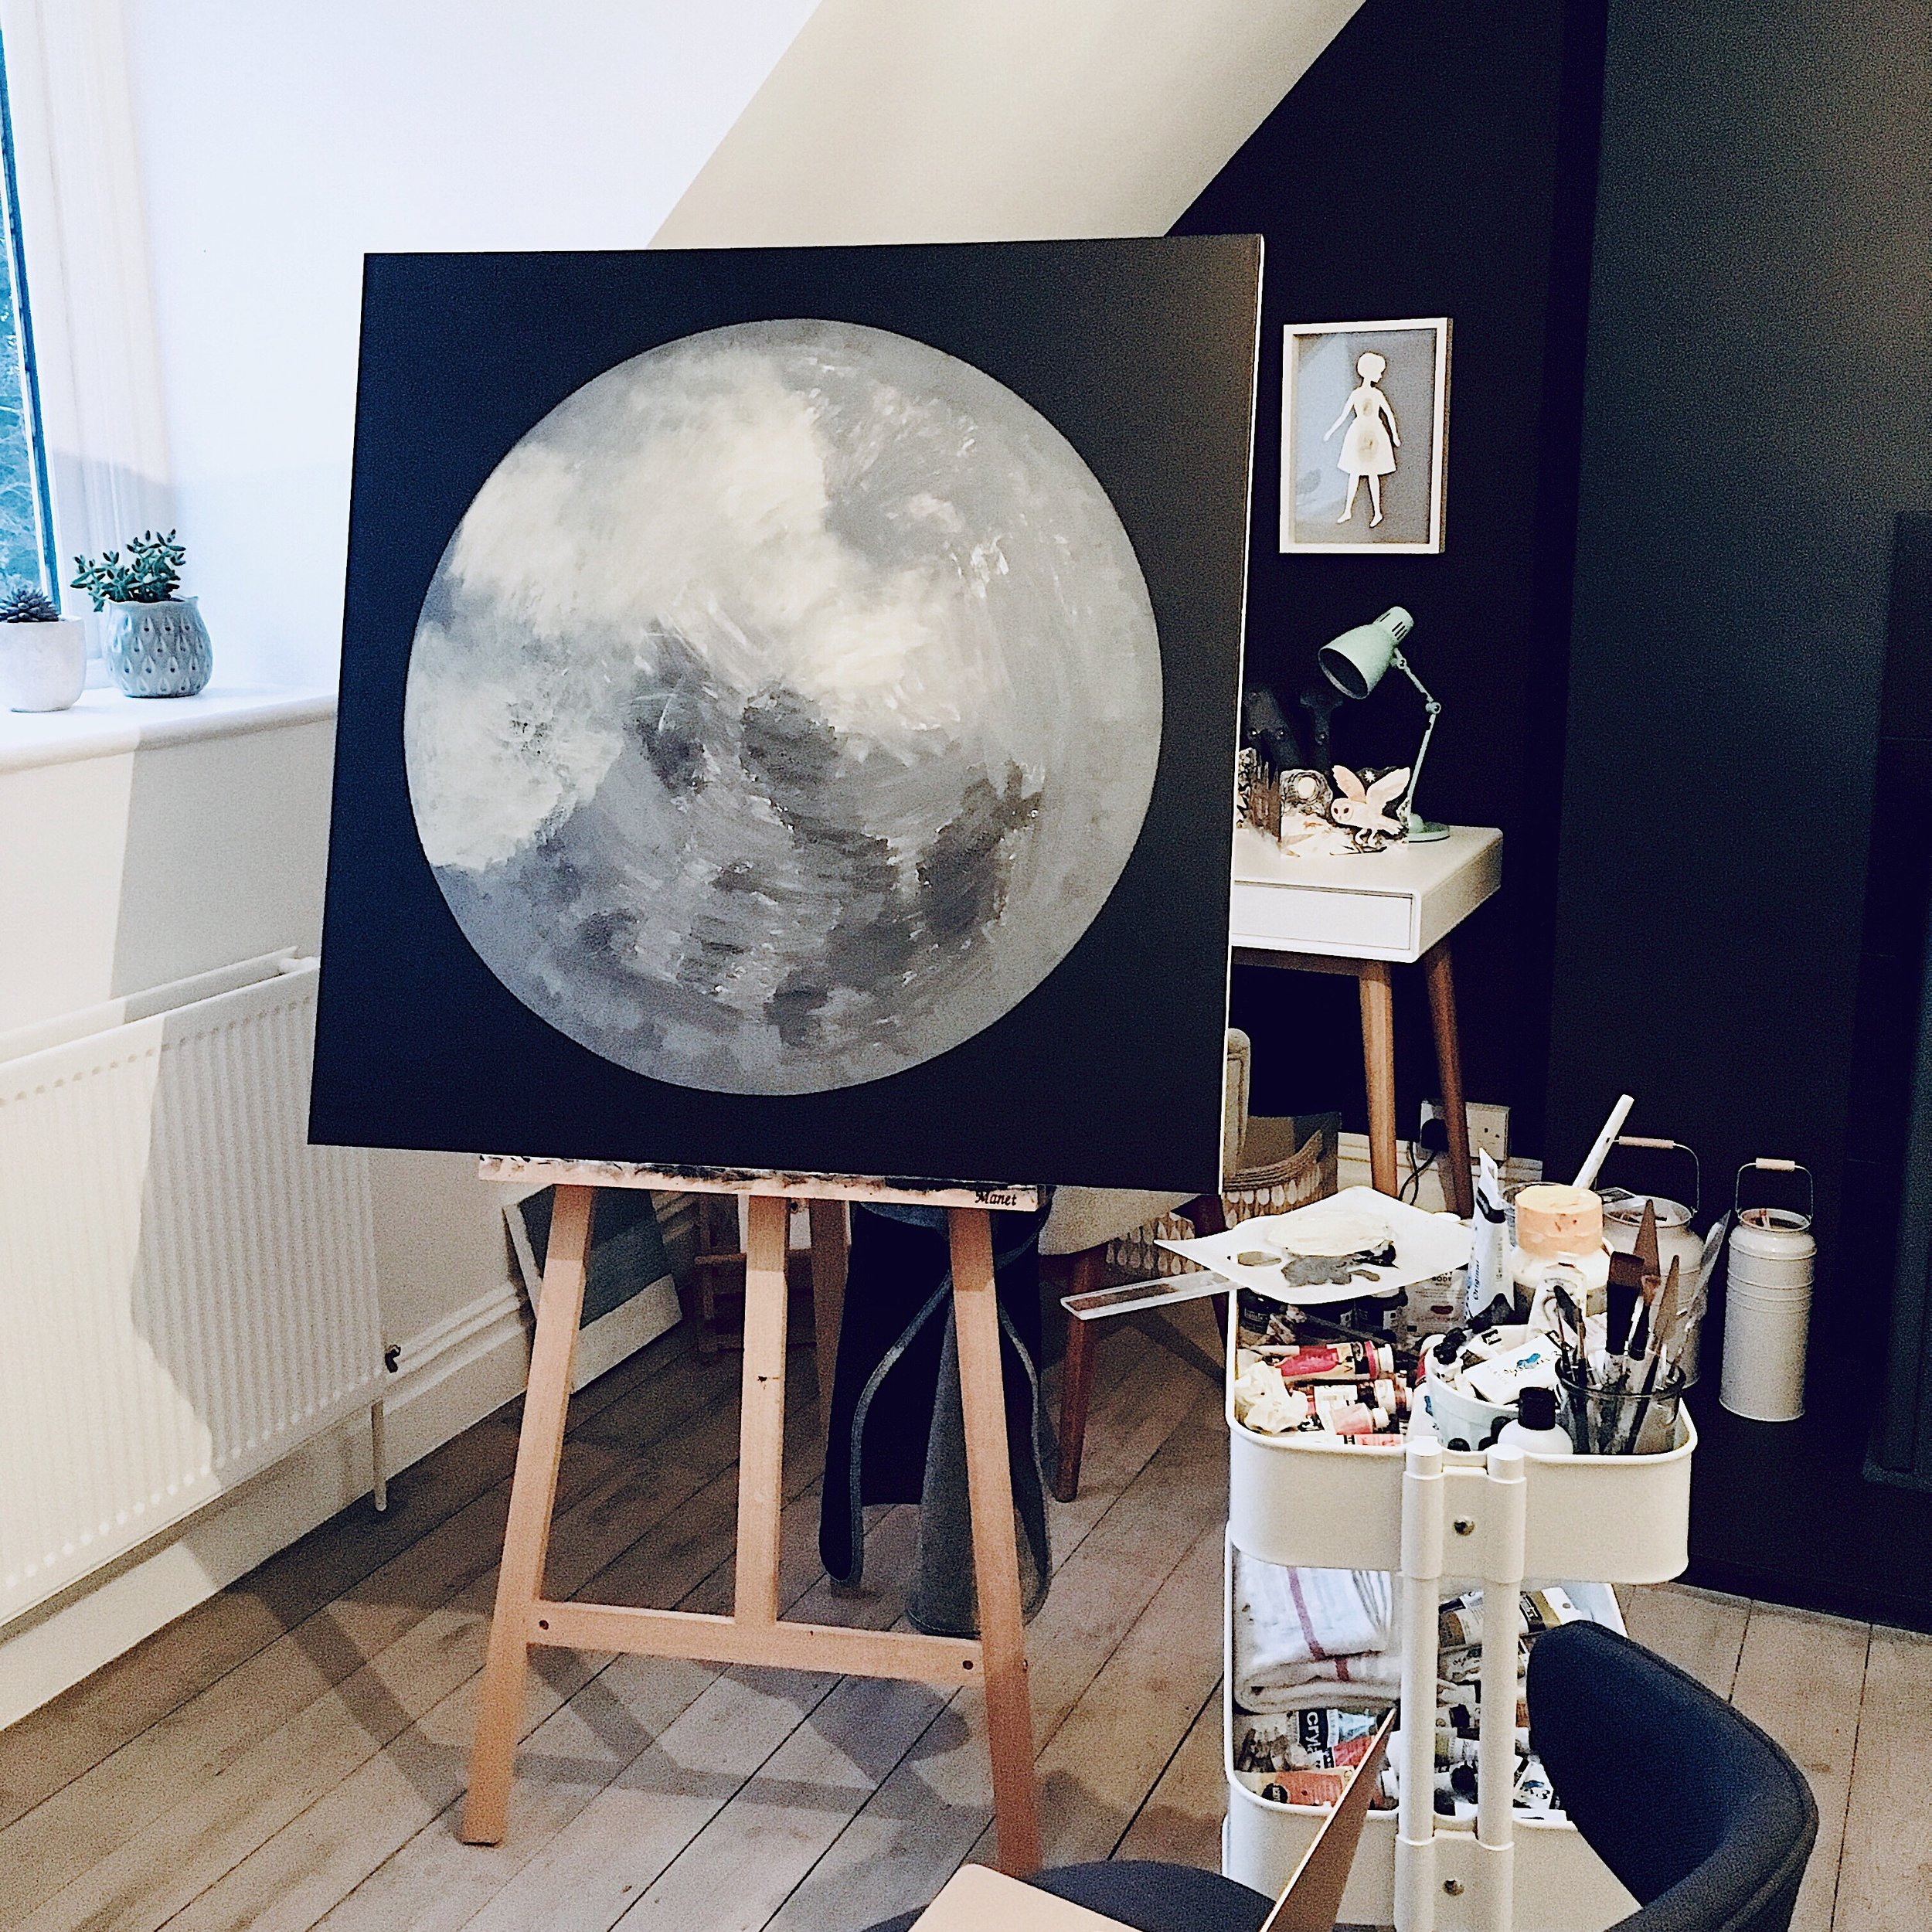 The first painting from the new Moonscape series in progress in the studio. Reigate, Surrey, April 2019 © Natasha Newton